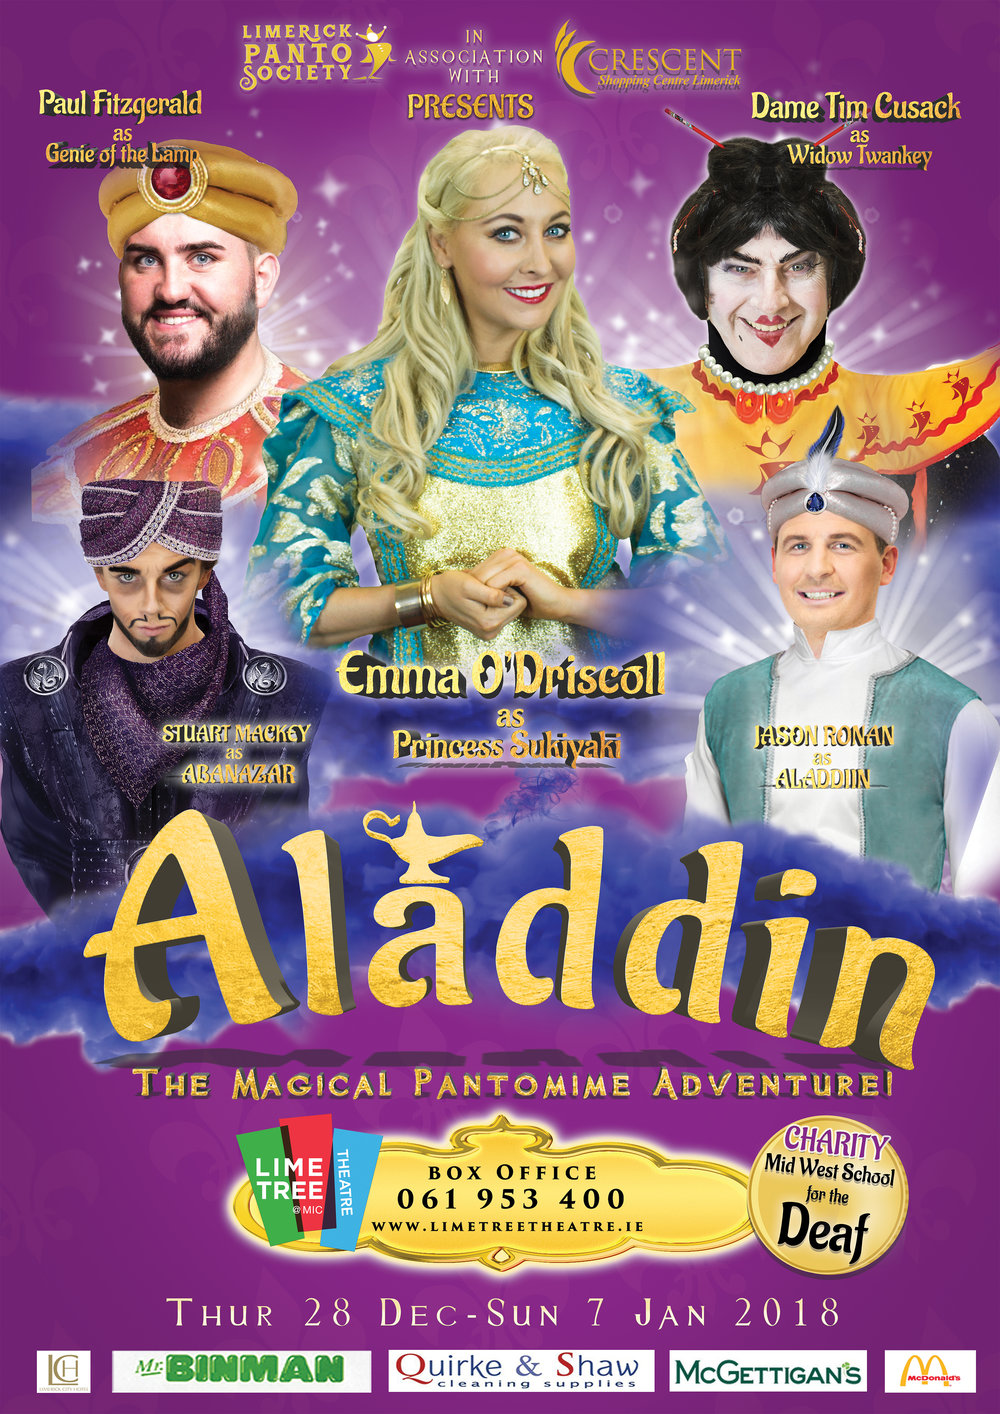 New_A3_AladdinPoster.jpg